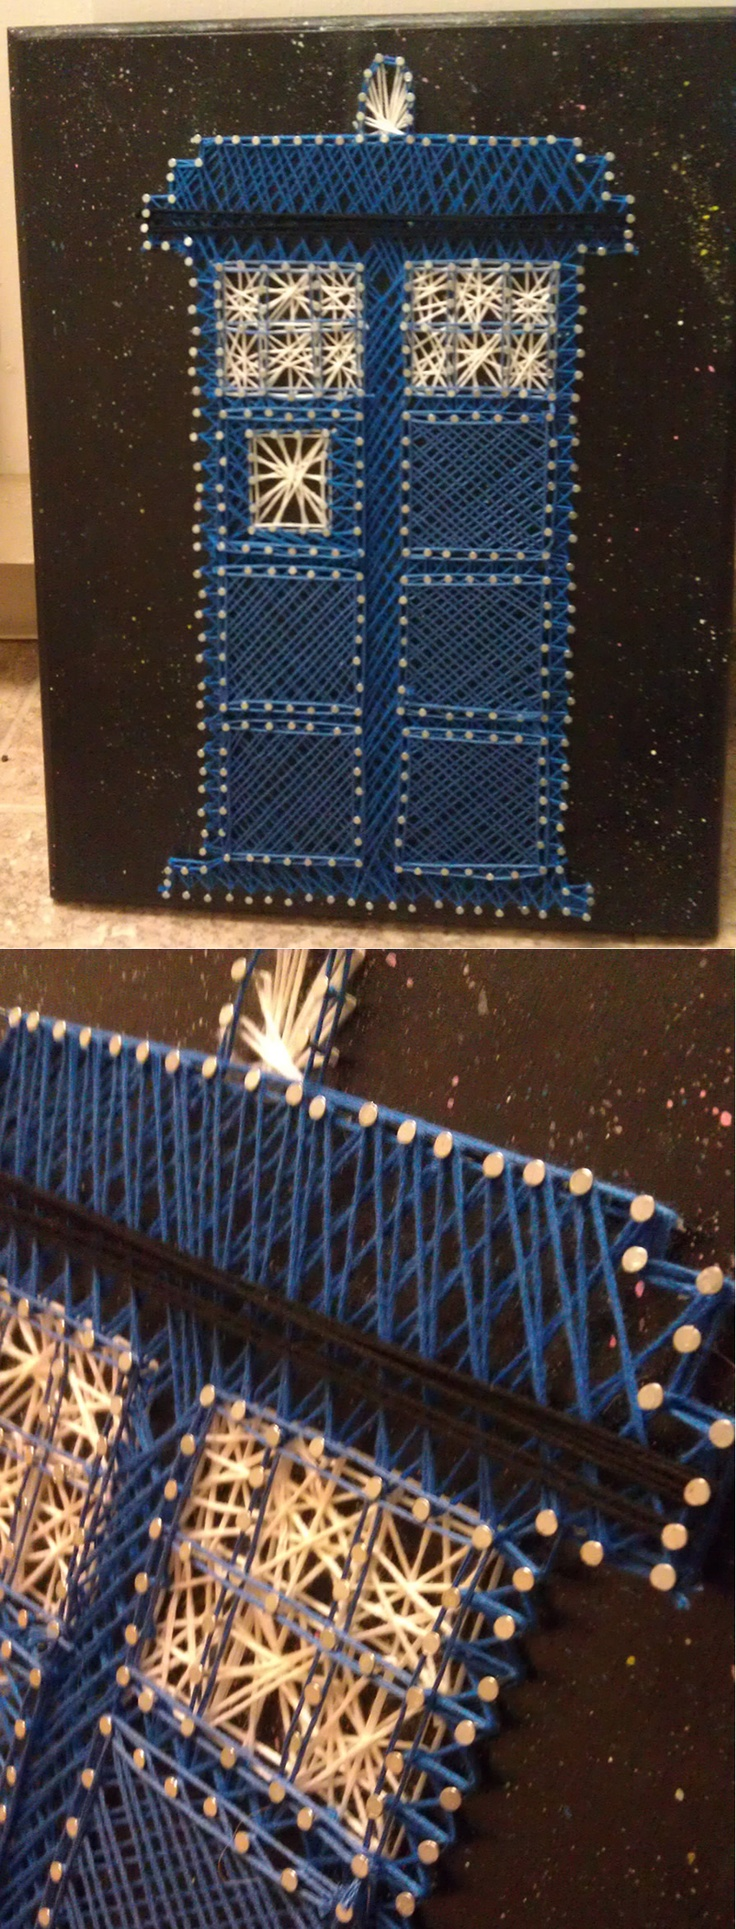 122 best String Art! images on Pinterest | Spikes, String art and ...